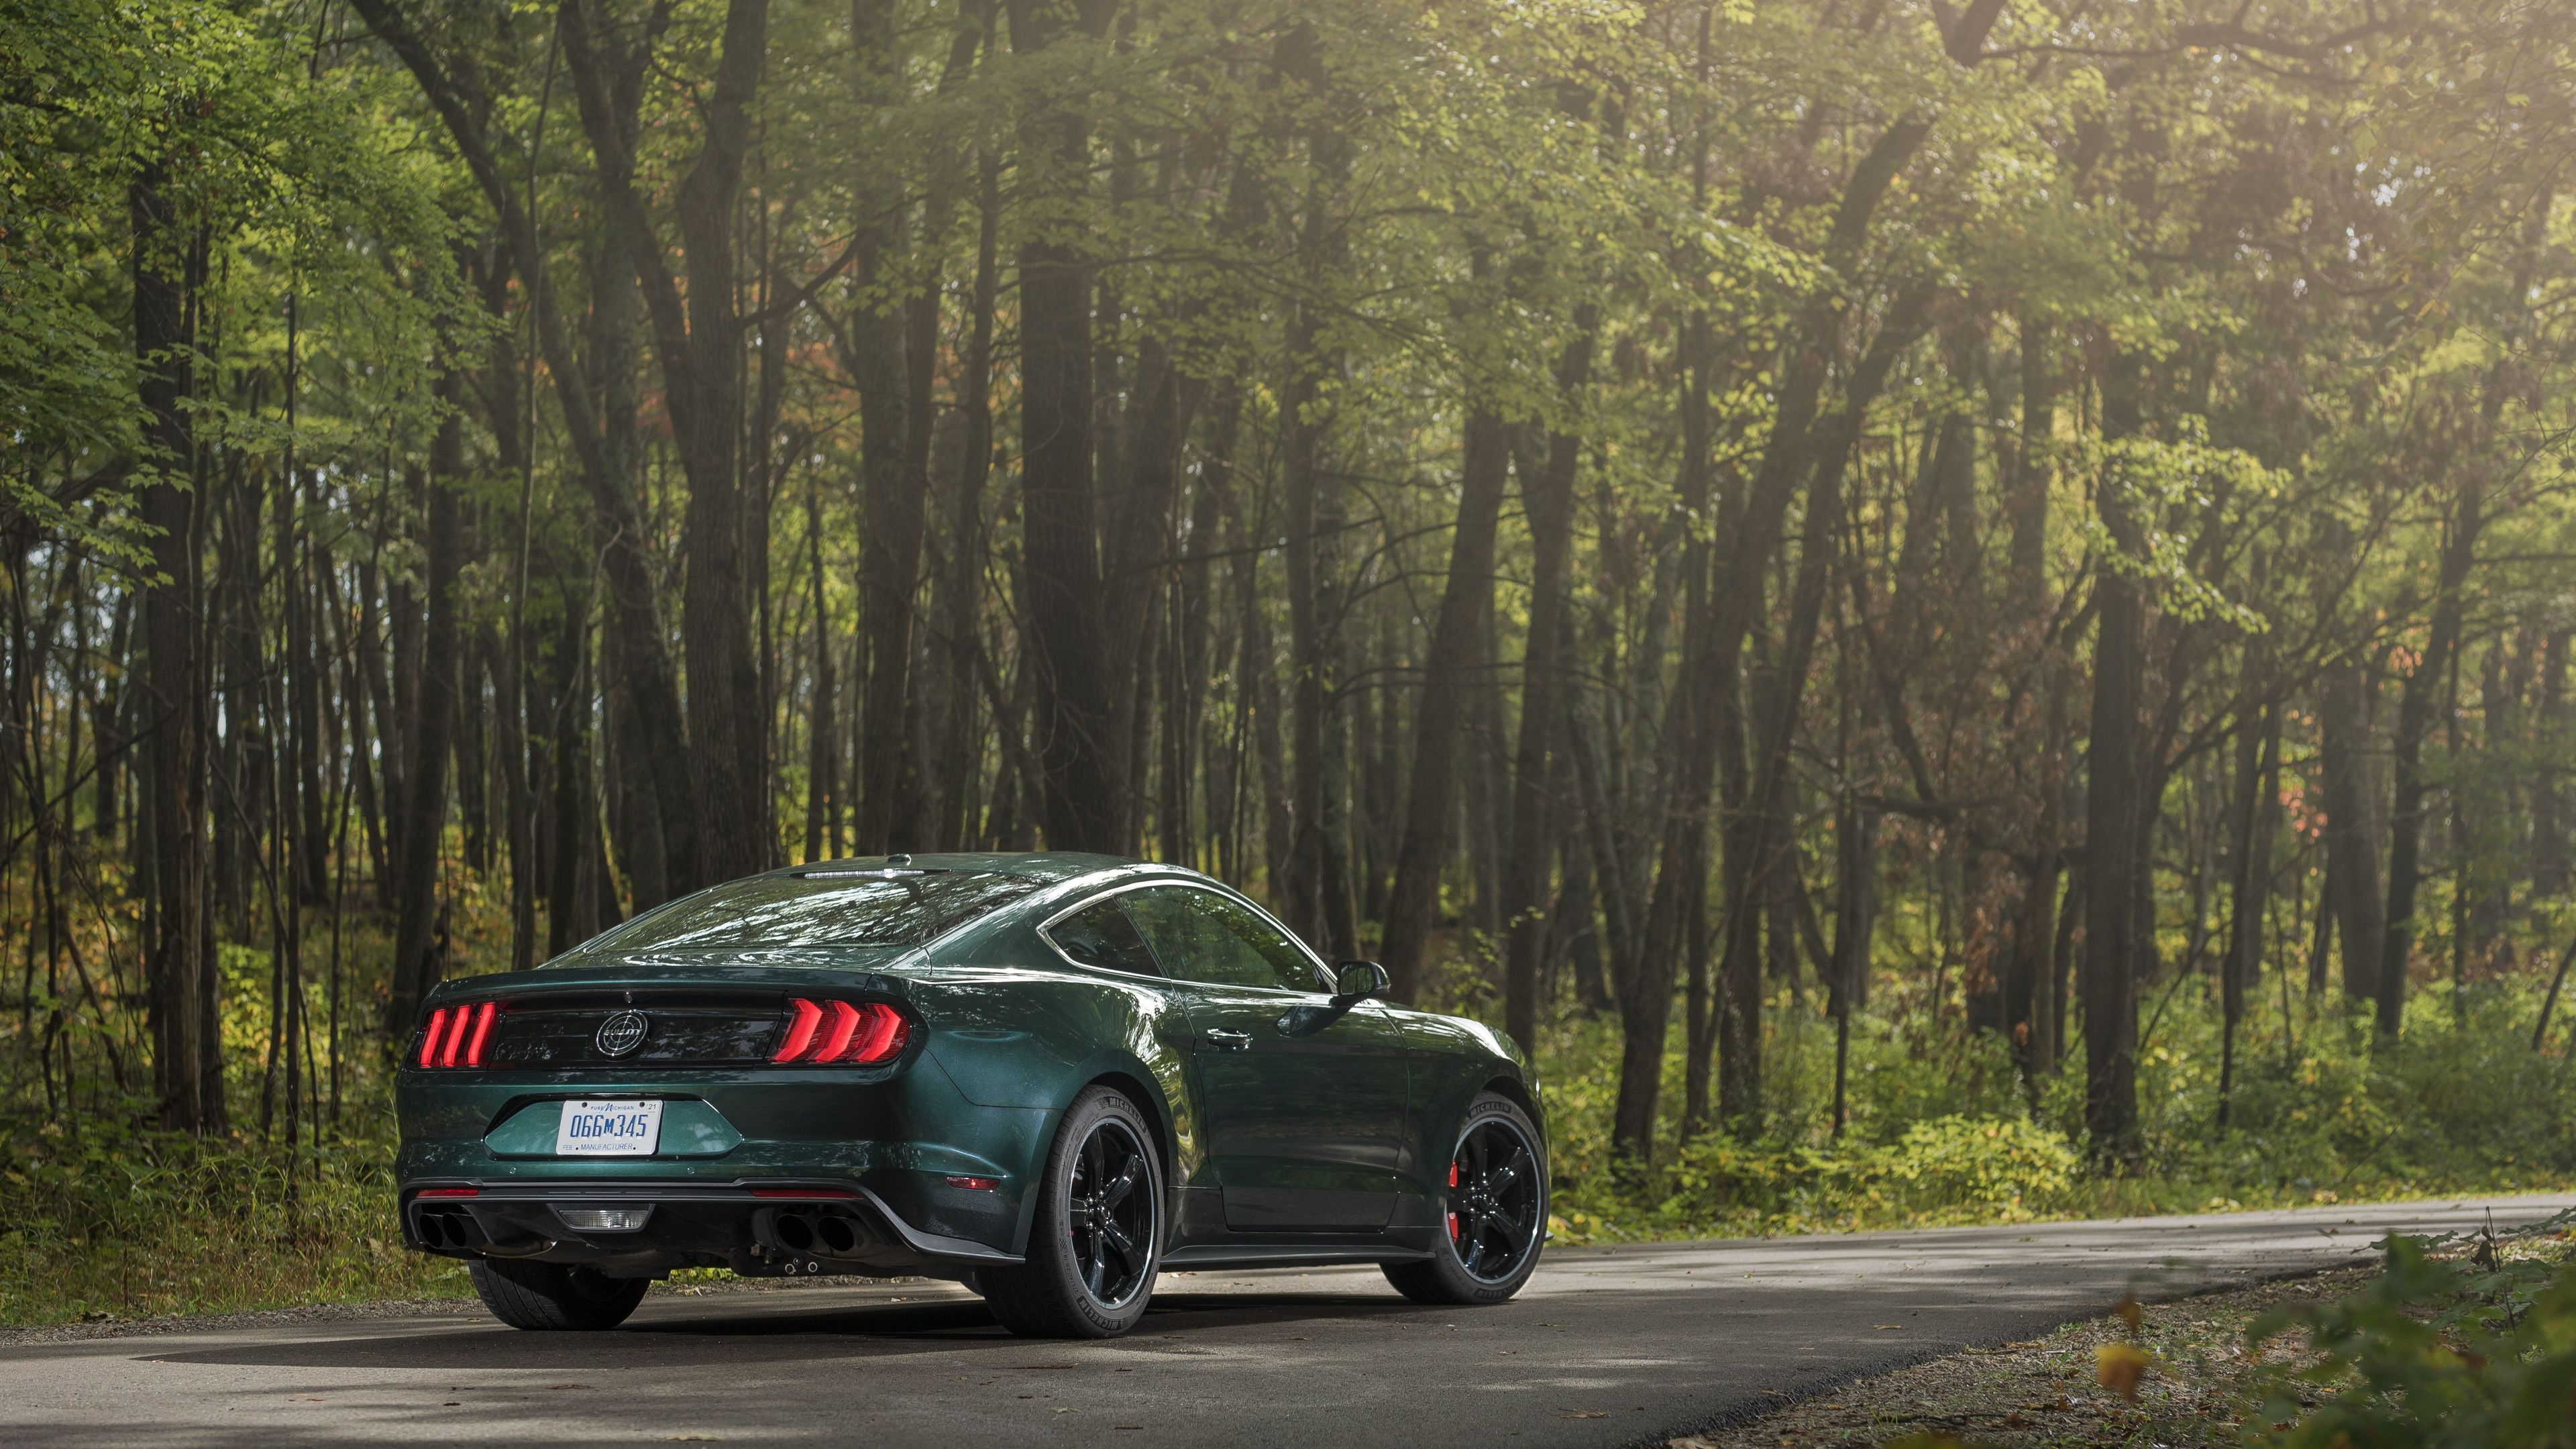 2019 ford mustang bullitt 4k 1559764516 - 2019 Ford Mustang Bullitt 4k - mustang wallpapers, hd-wallpapers, ford wallpapers, ford mustang wallpapers, cars wallpapers, 4k-wallpapers, 2019 cars wallpapers